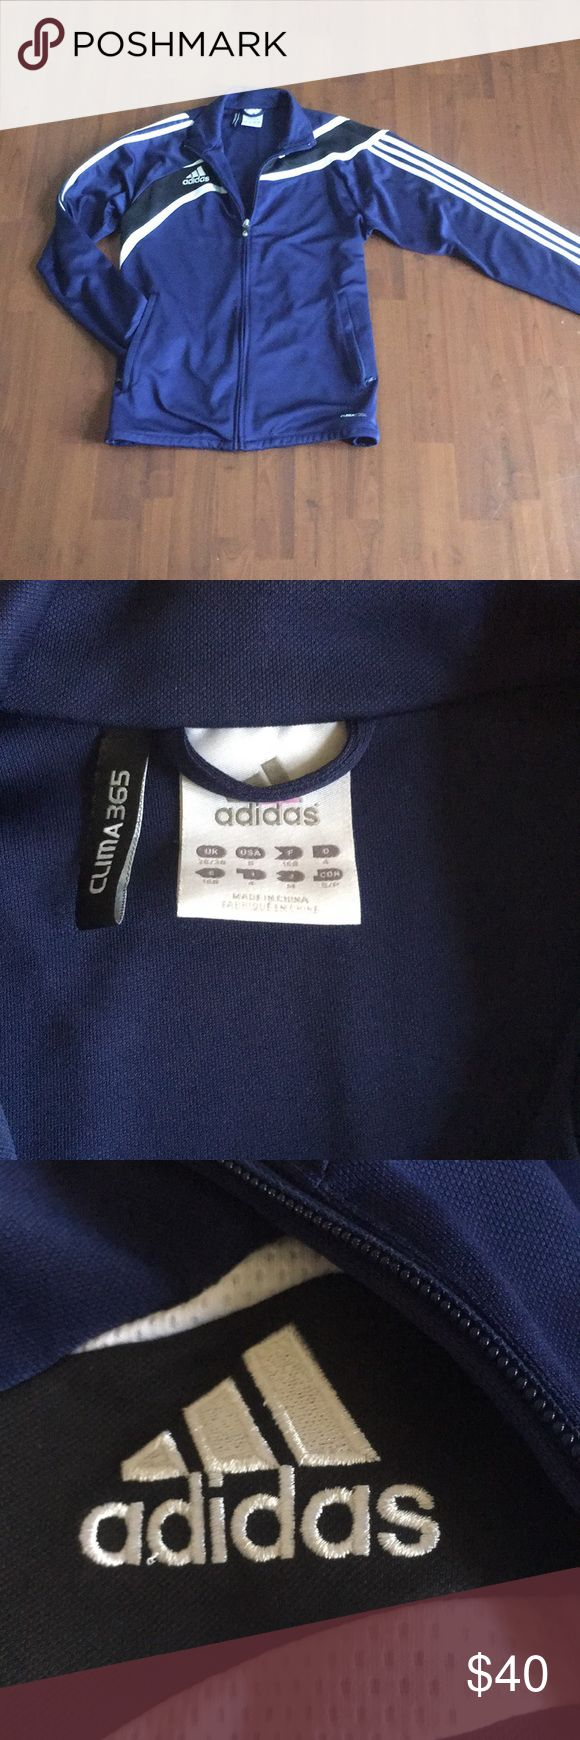 NWOT adidas Jacket Brand new, without tags royal blue jacket by adidas. It has a cool black stripe that goes from the back, across the front, and then all the way down the left sleeve. Men's size S adidas Jackets & Coats Performance Jackets